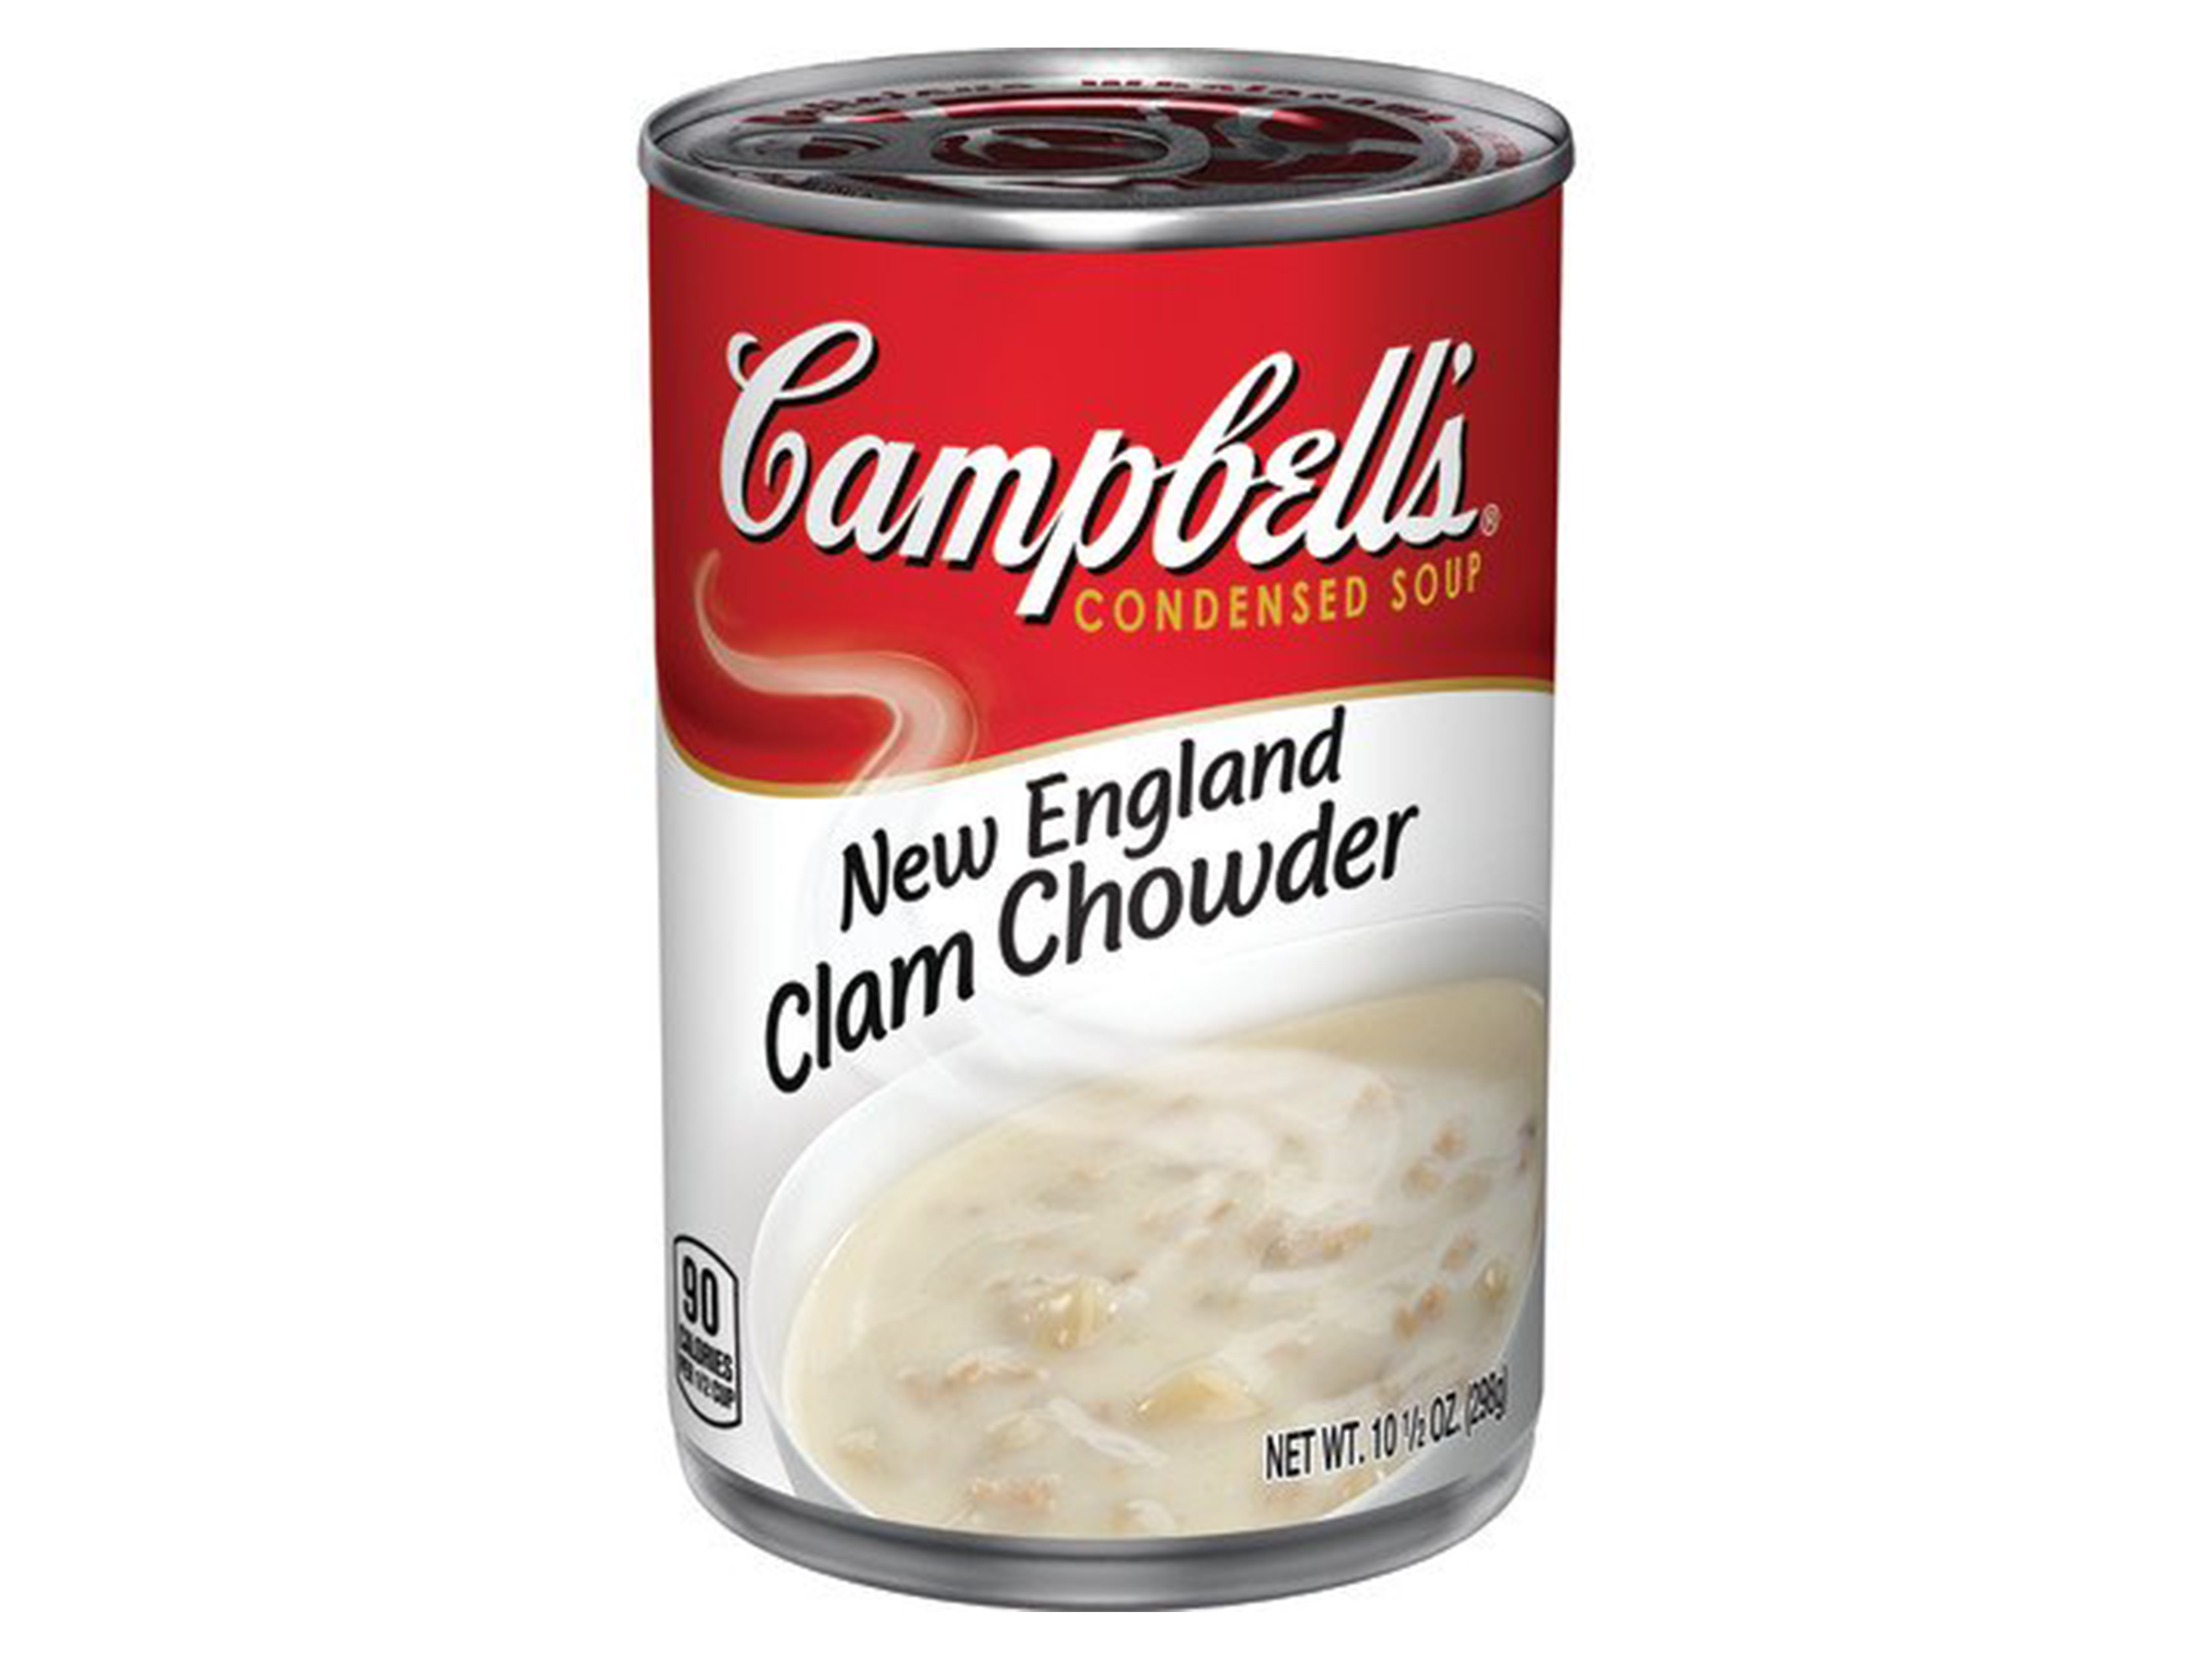 campbells-clam-chowder